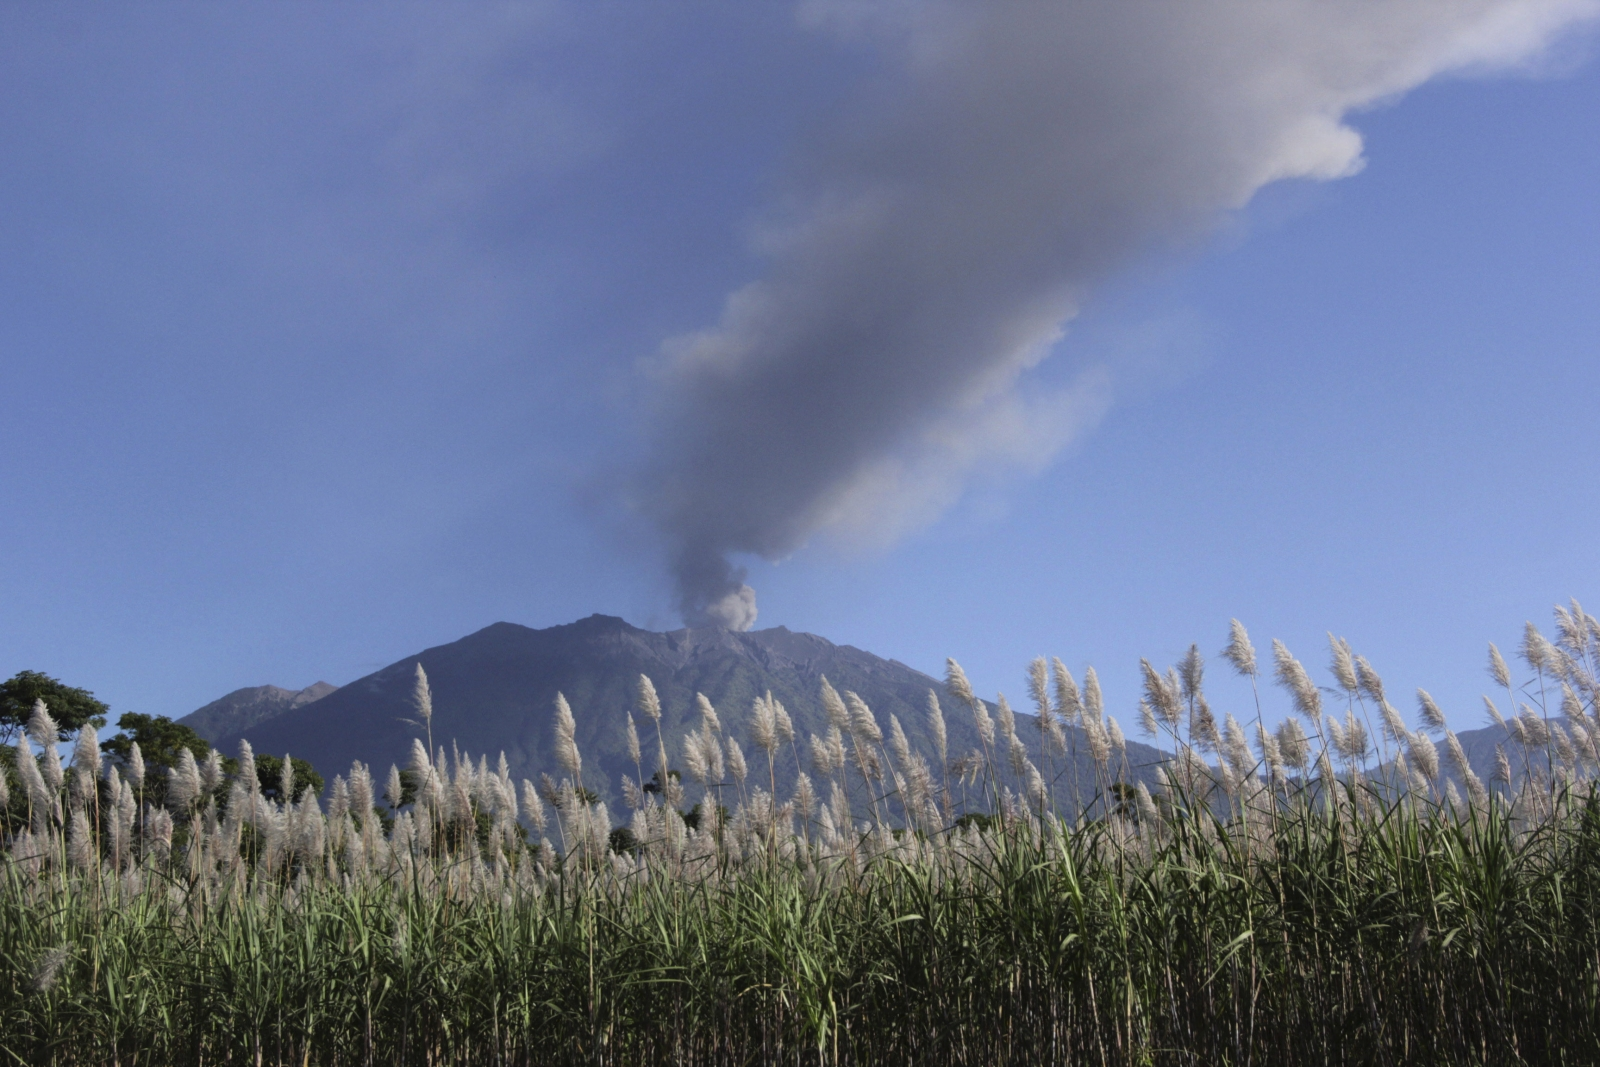 Indonesia airports, flights and volcanic ash